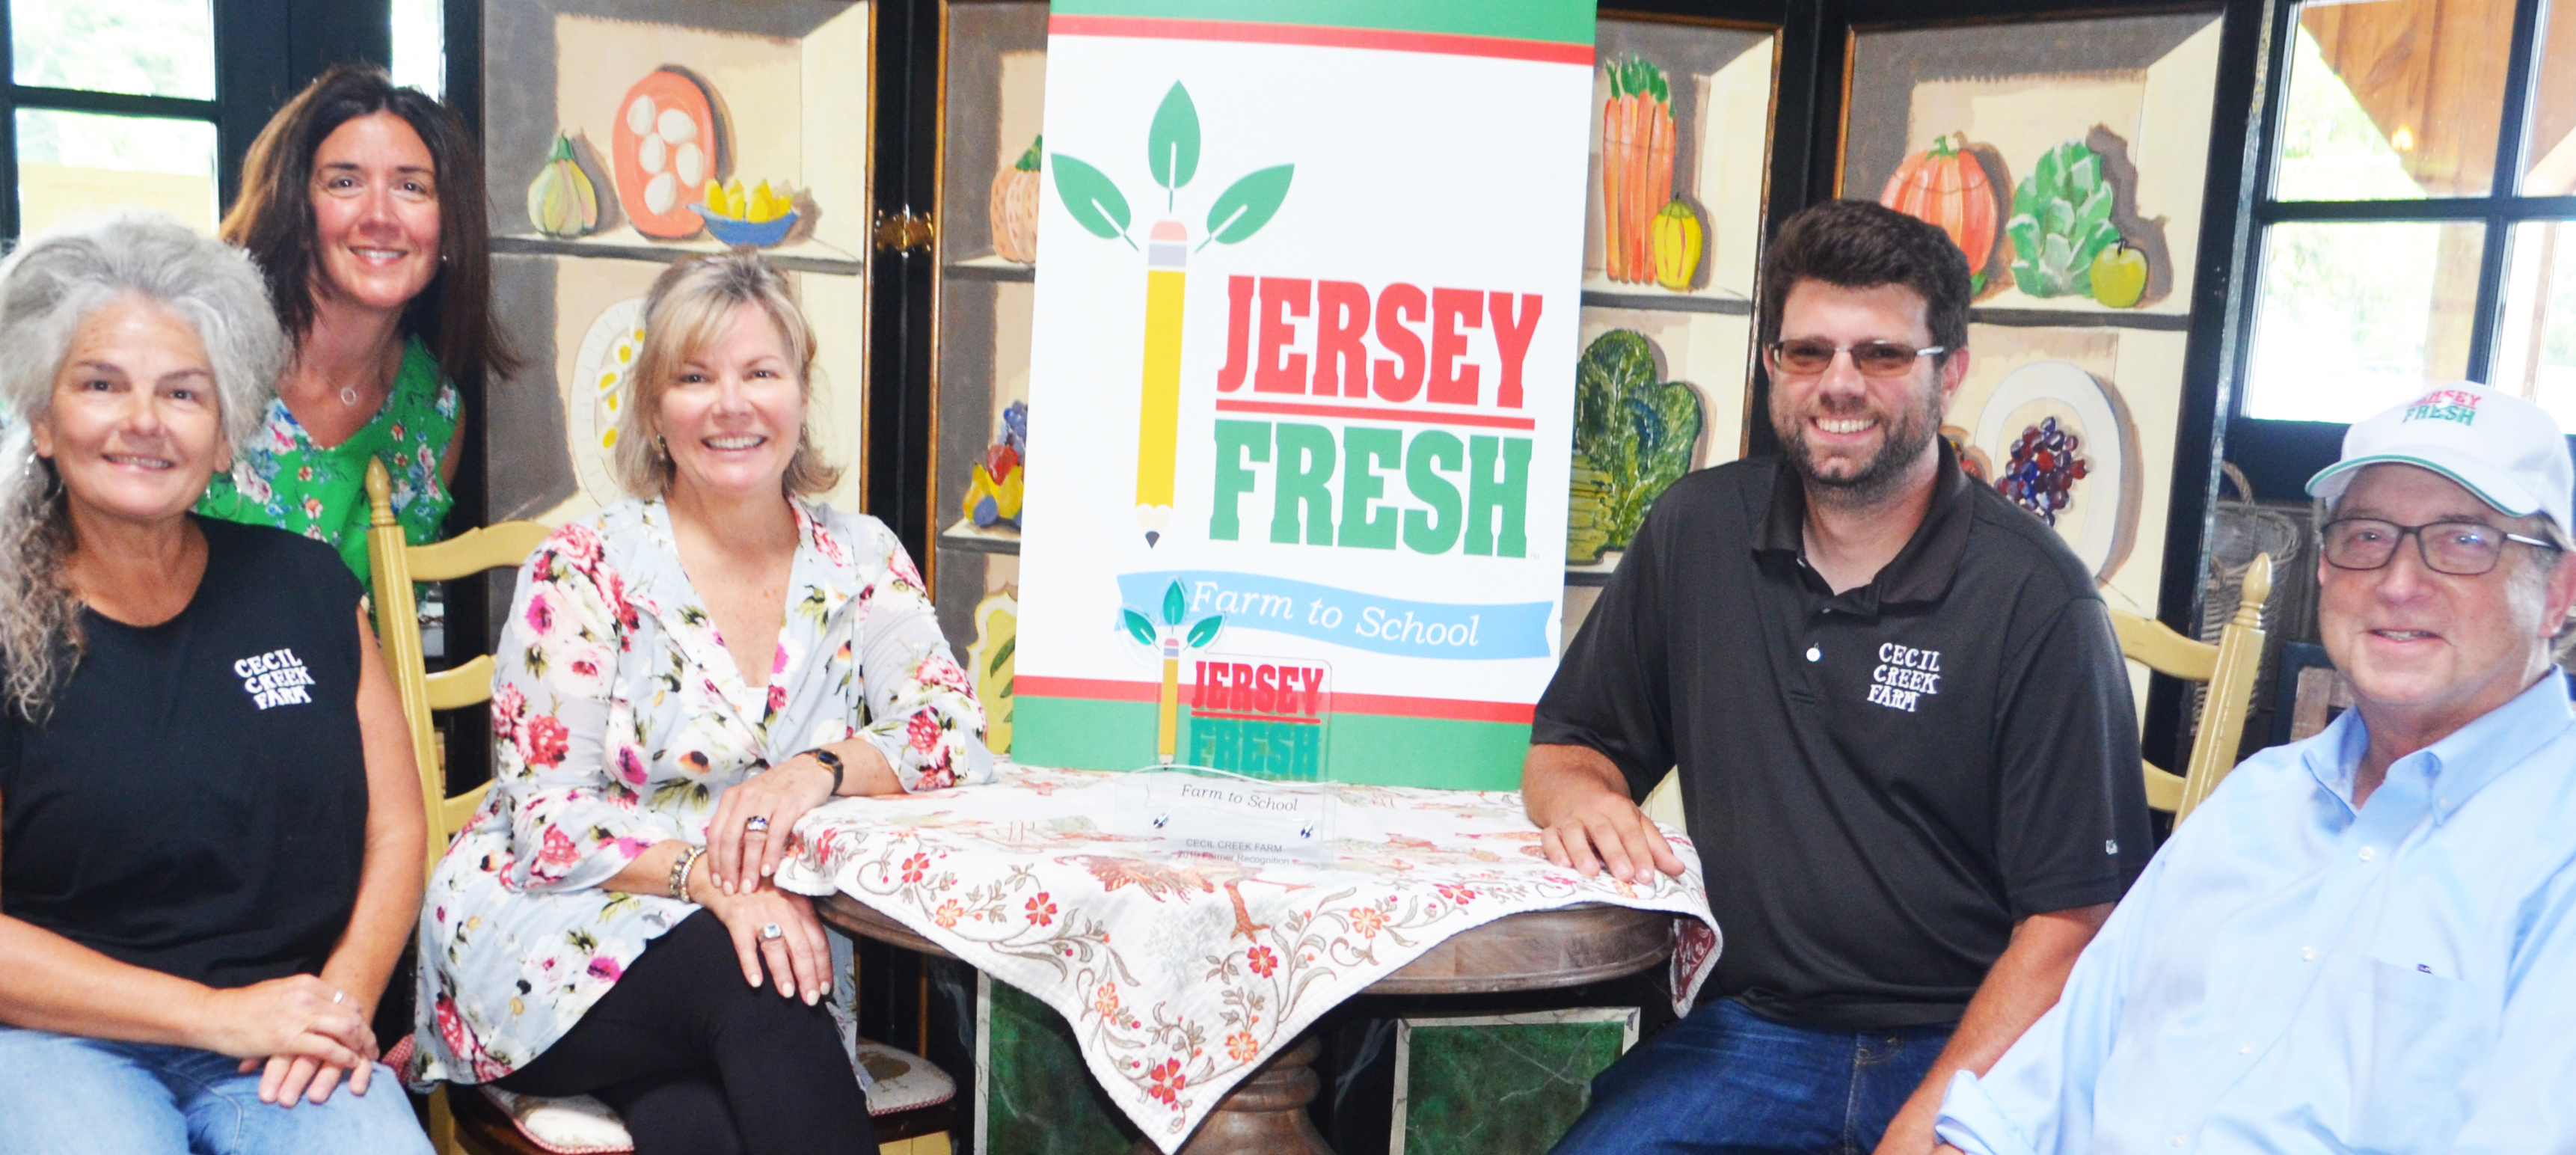 Jersey Fresh Farm to School